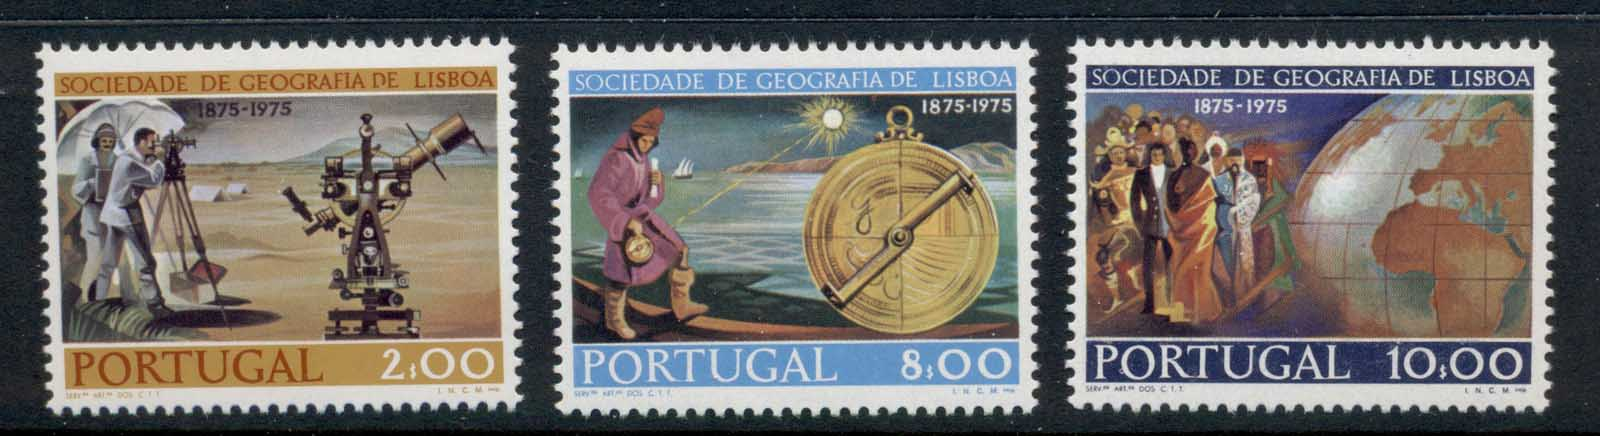 Portugal 1975 Lisbon Geographical Society MLH